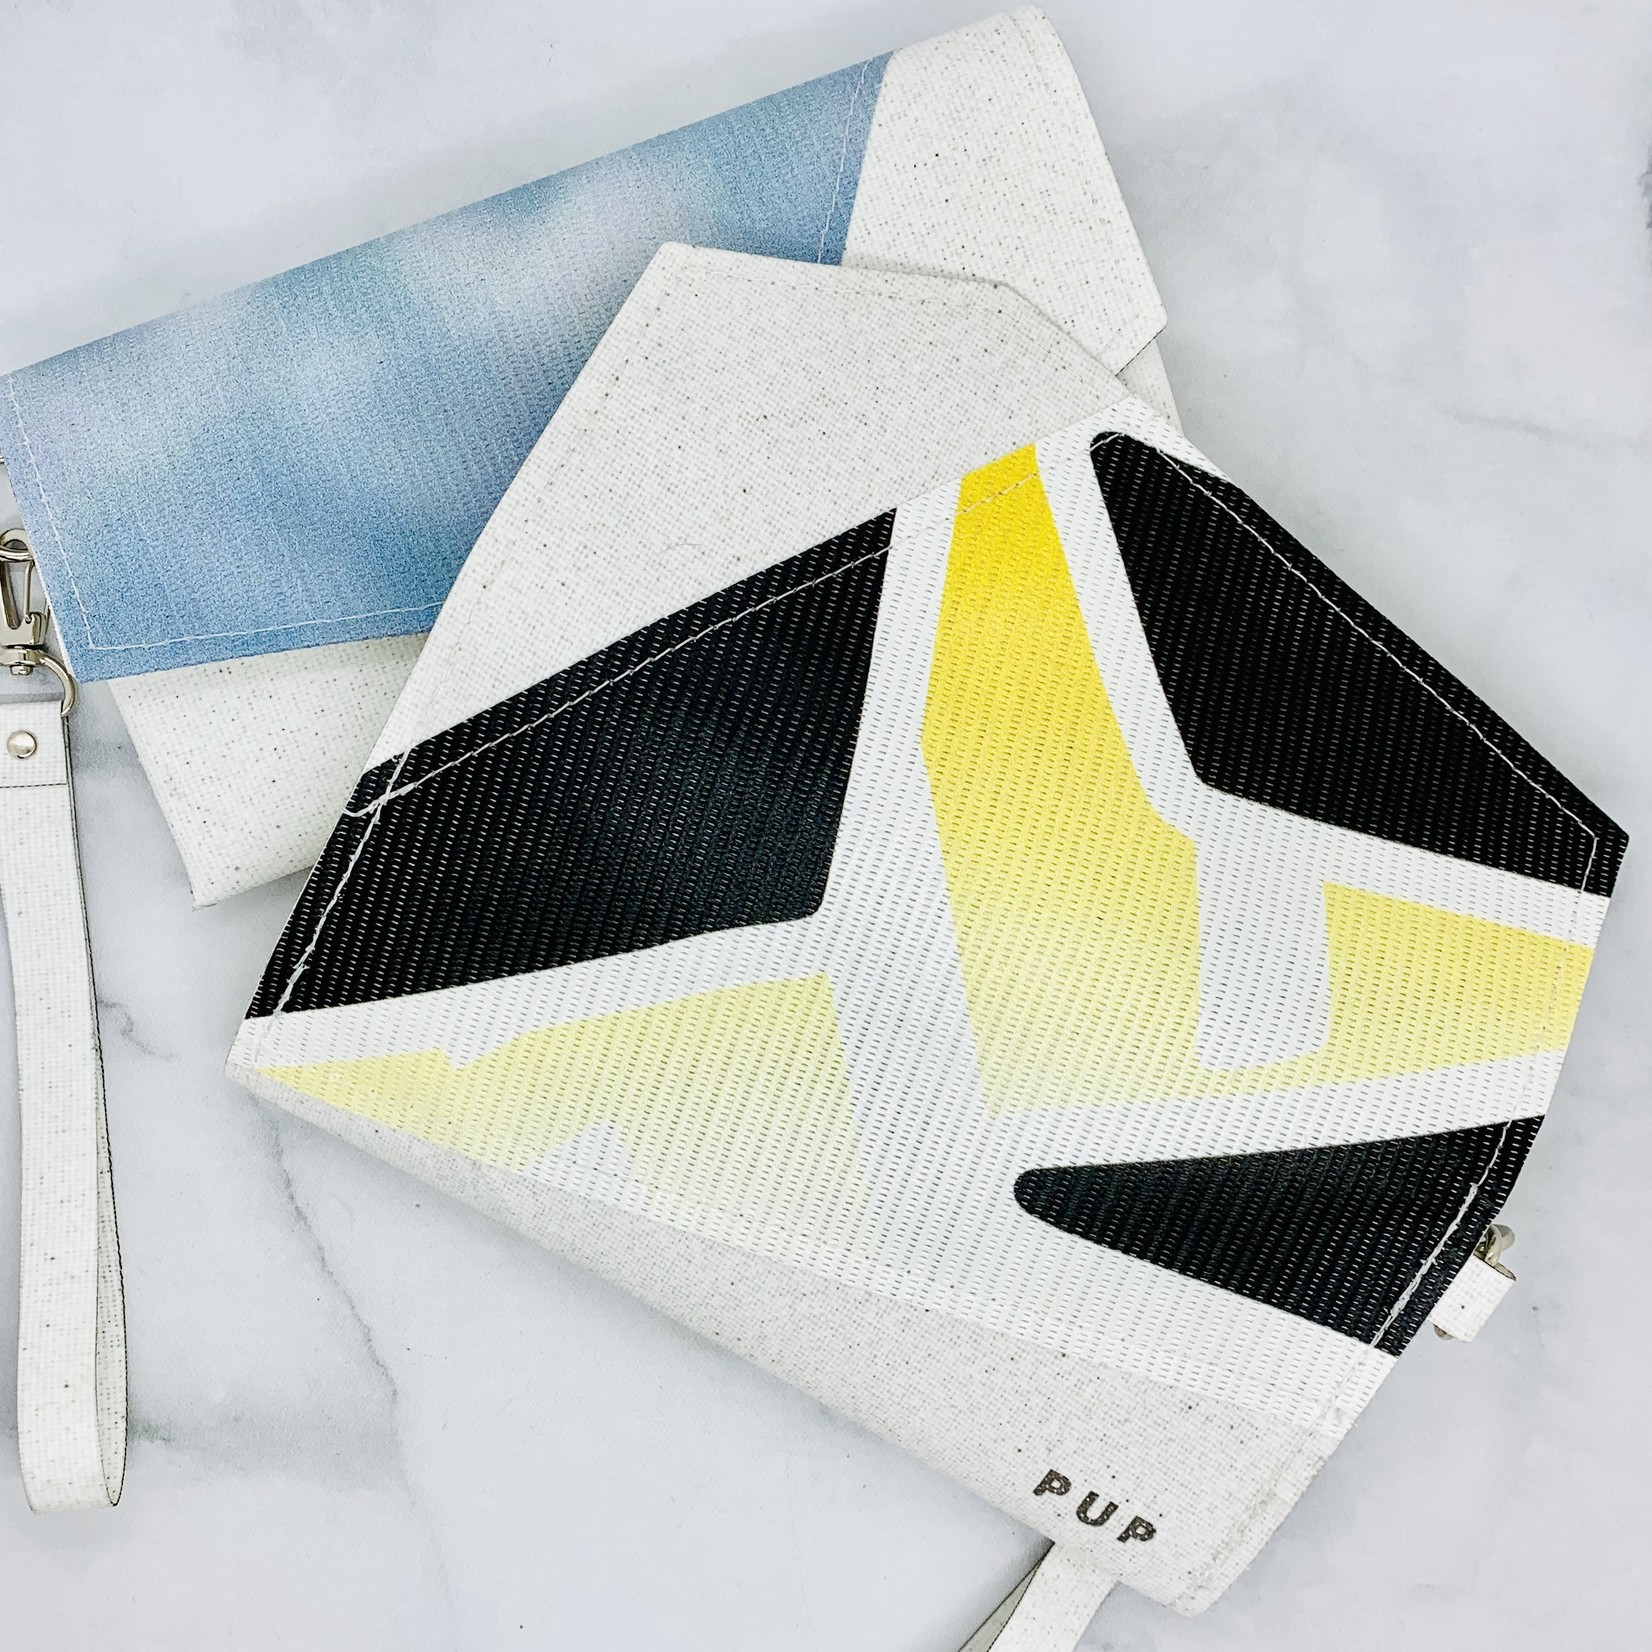 Curator Clutch Made From the Roof of the RCA Dome